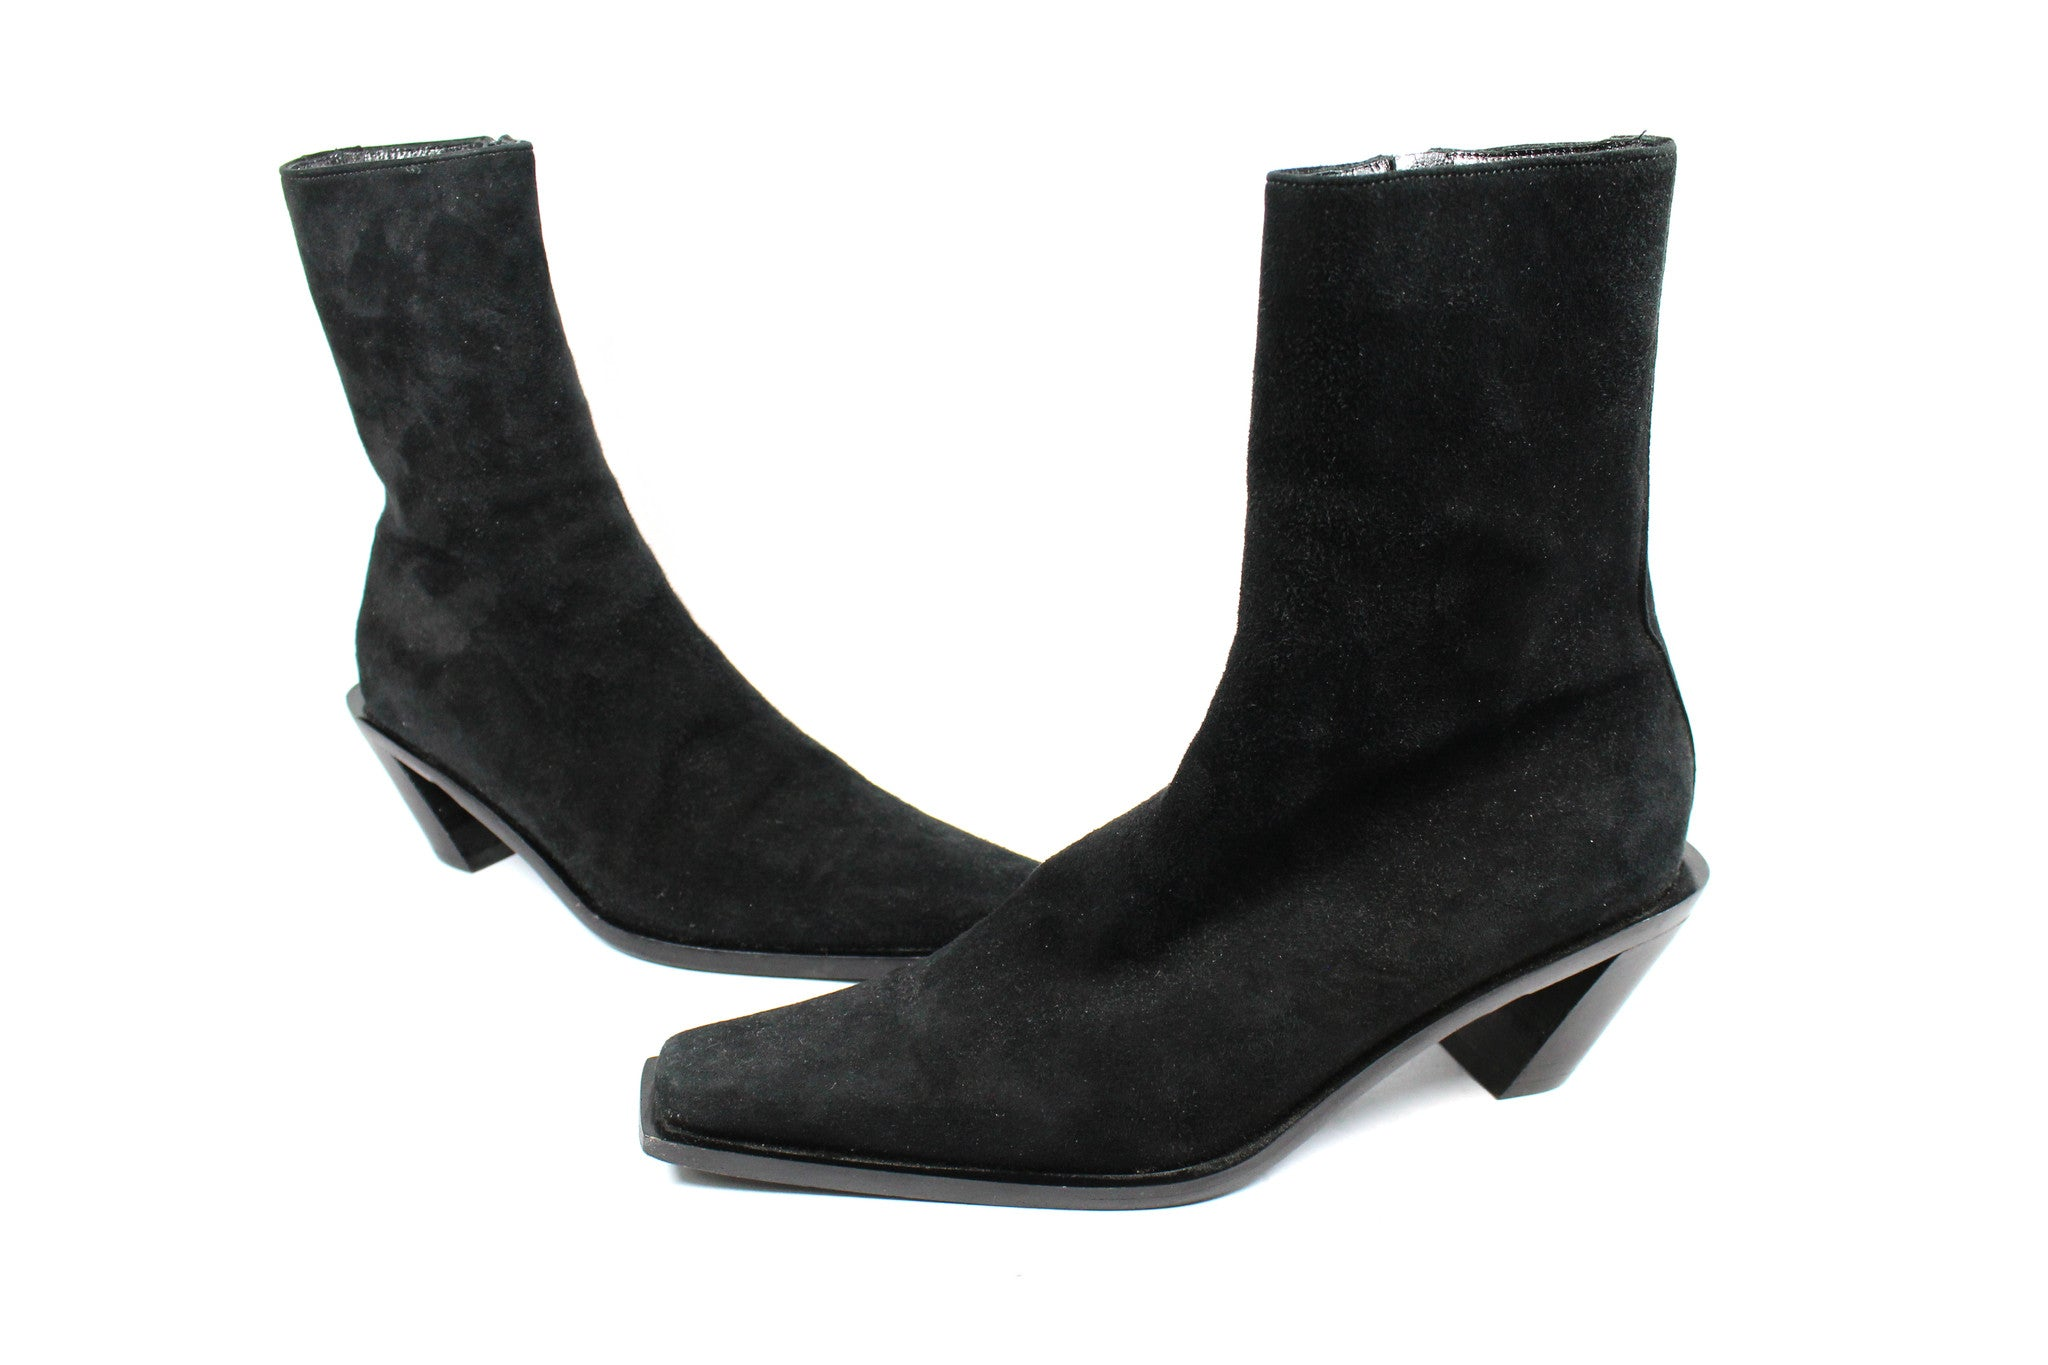 'SOLD' Ann Demeulemeester Suede Ankle Boots w Slanted Heel (Size 37) - Encore Consignment - 2